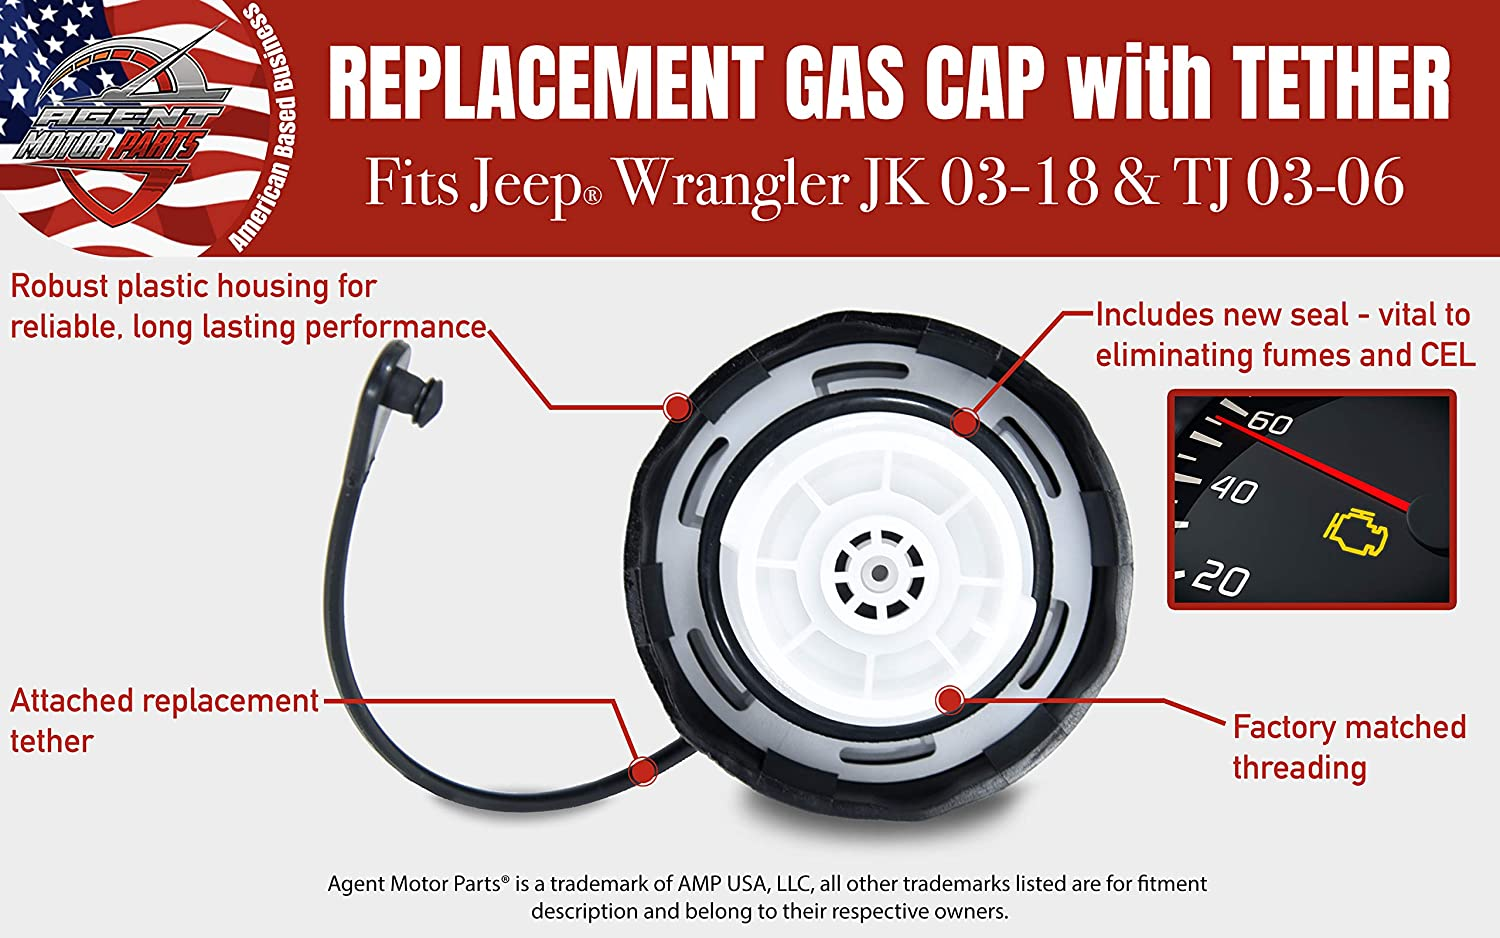 Replaces 52100552AG 52030387AB 2003-2006 Wrangler TJ 52030387AA 5210 0552AG Compatible with for 2003-2018 Jeep Wrangler JK Gas Cap Replacement Fuel Filler Cap